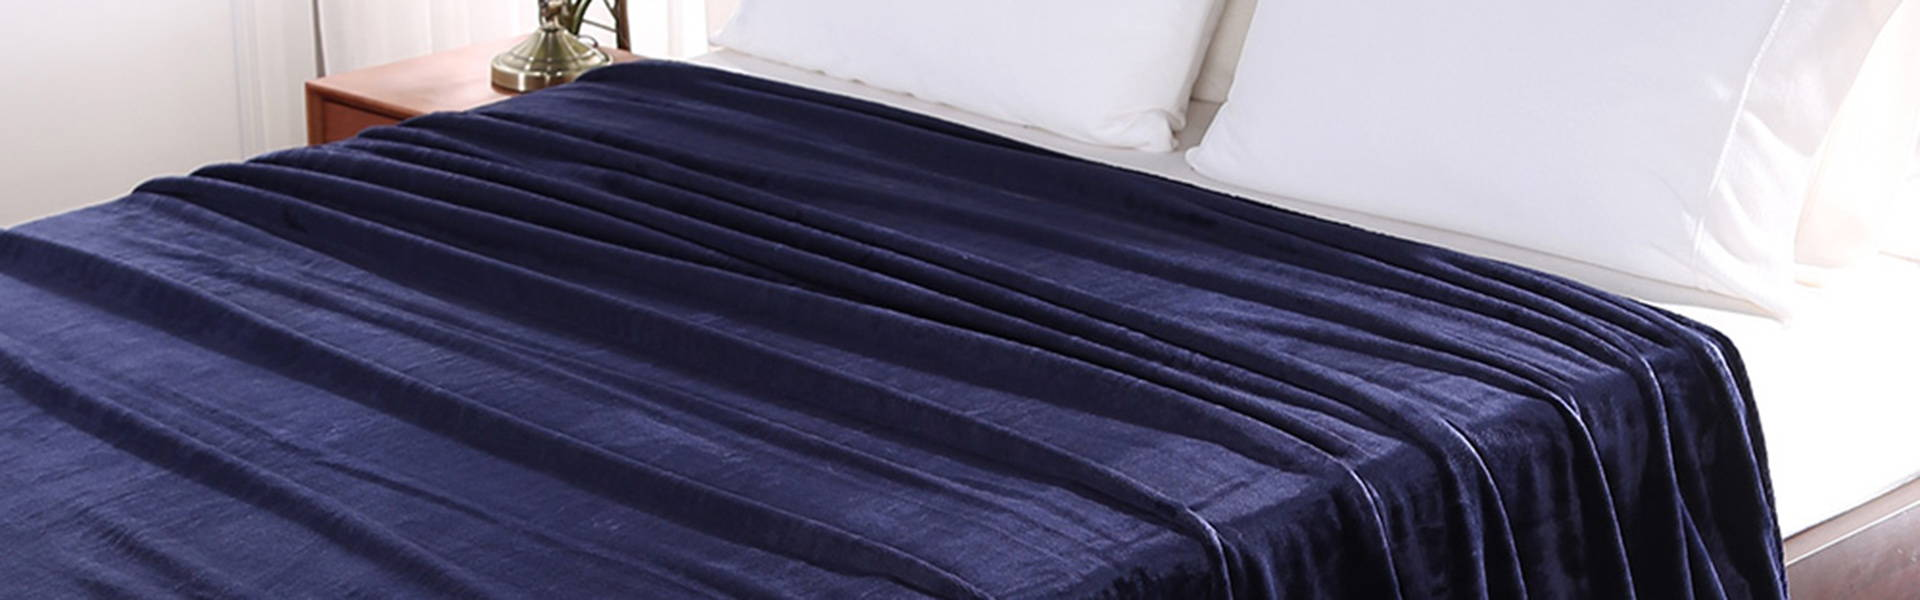 VelvetLoft Bed Blanket